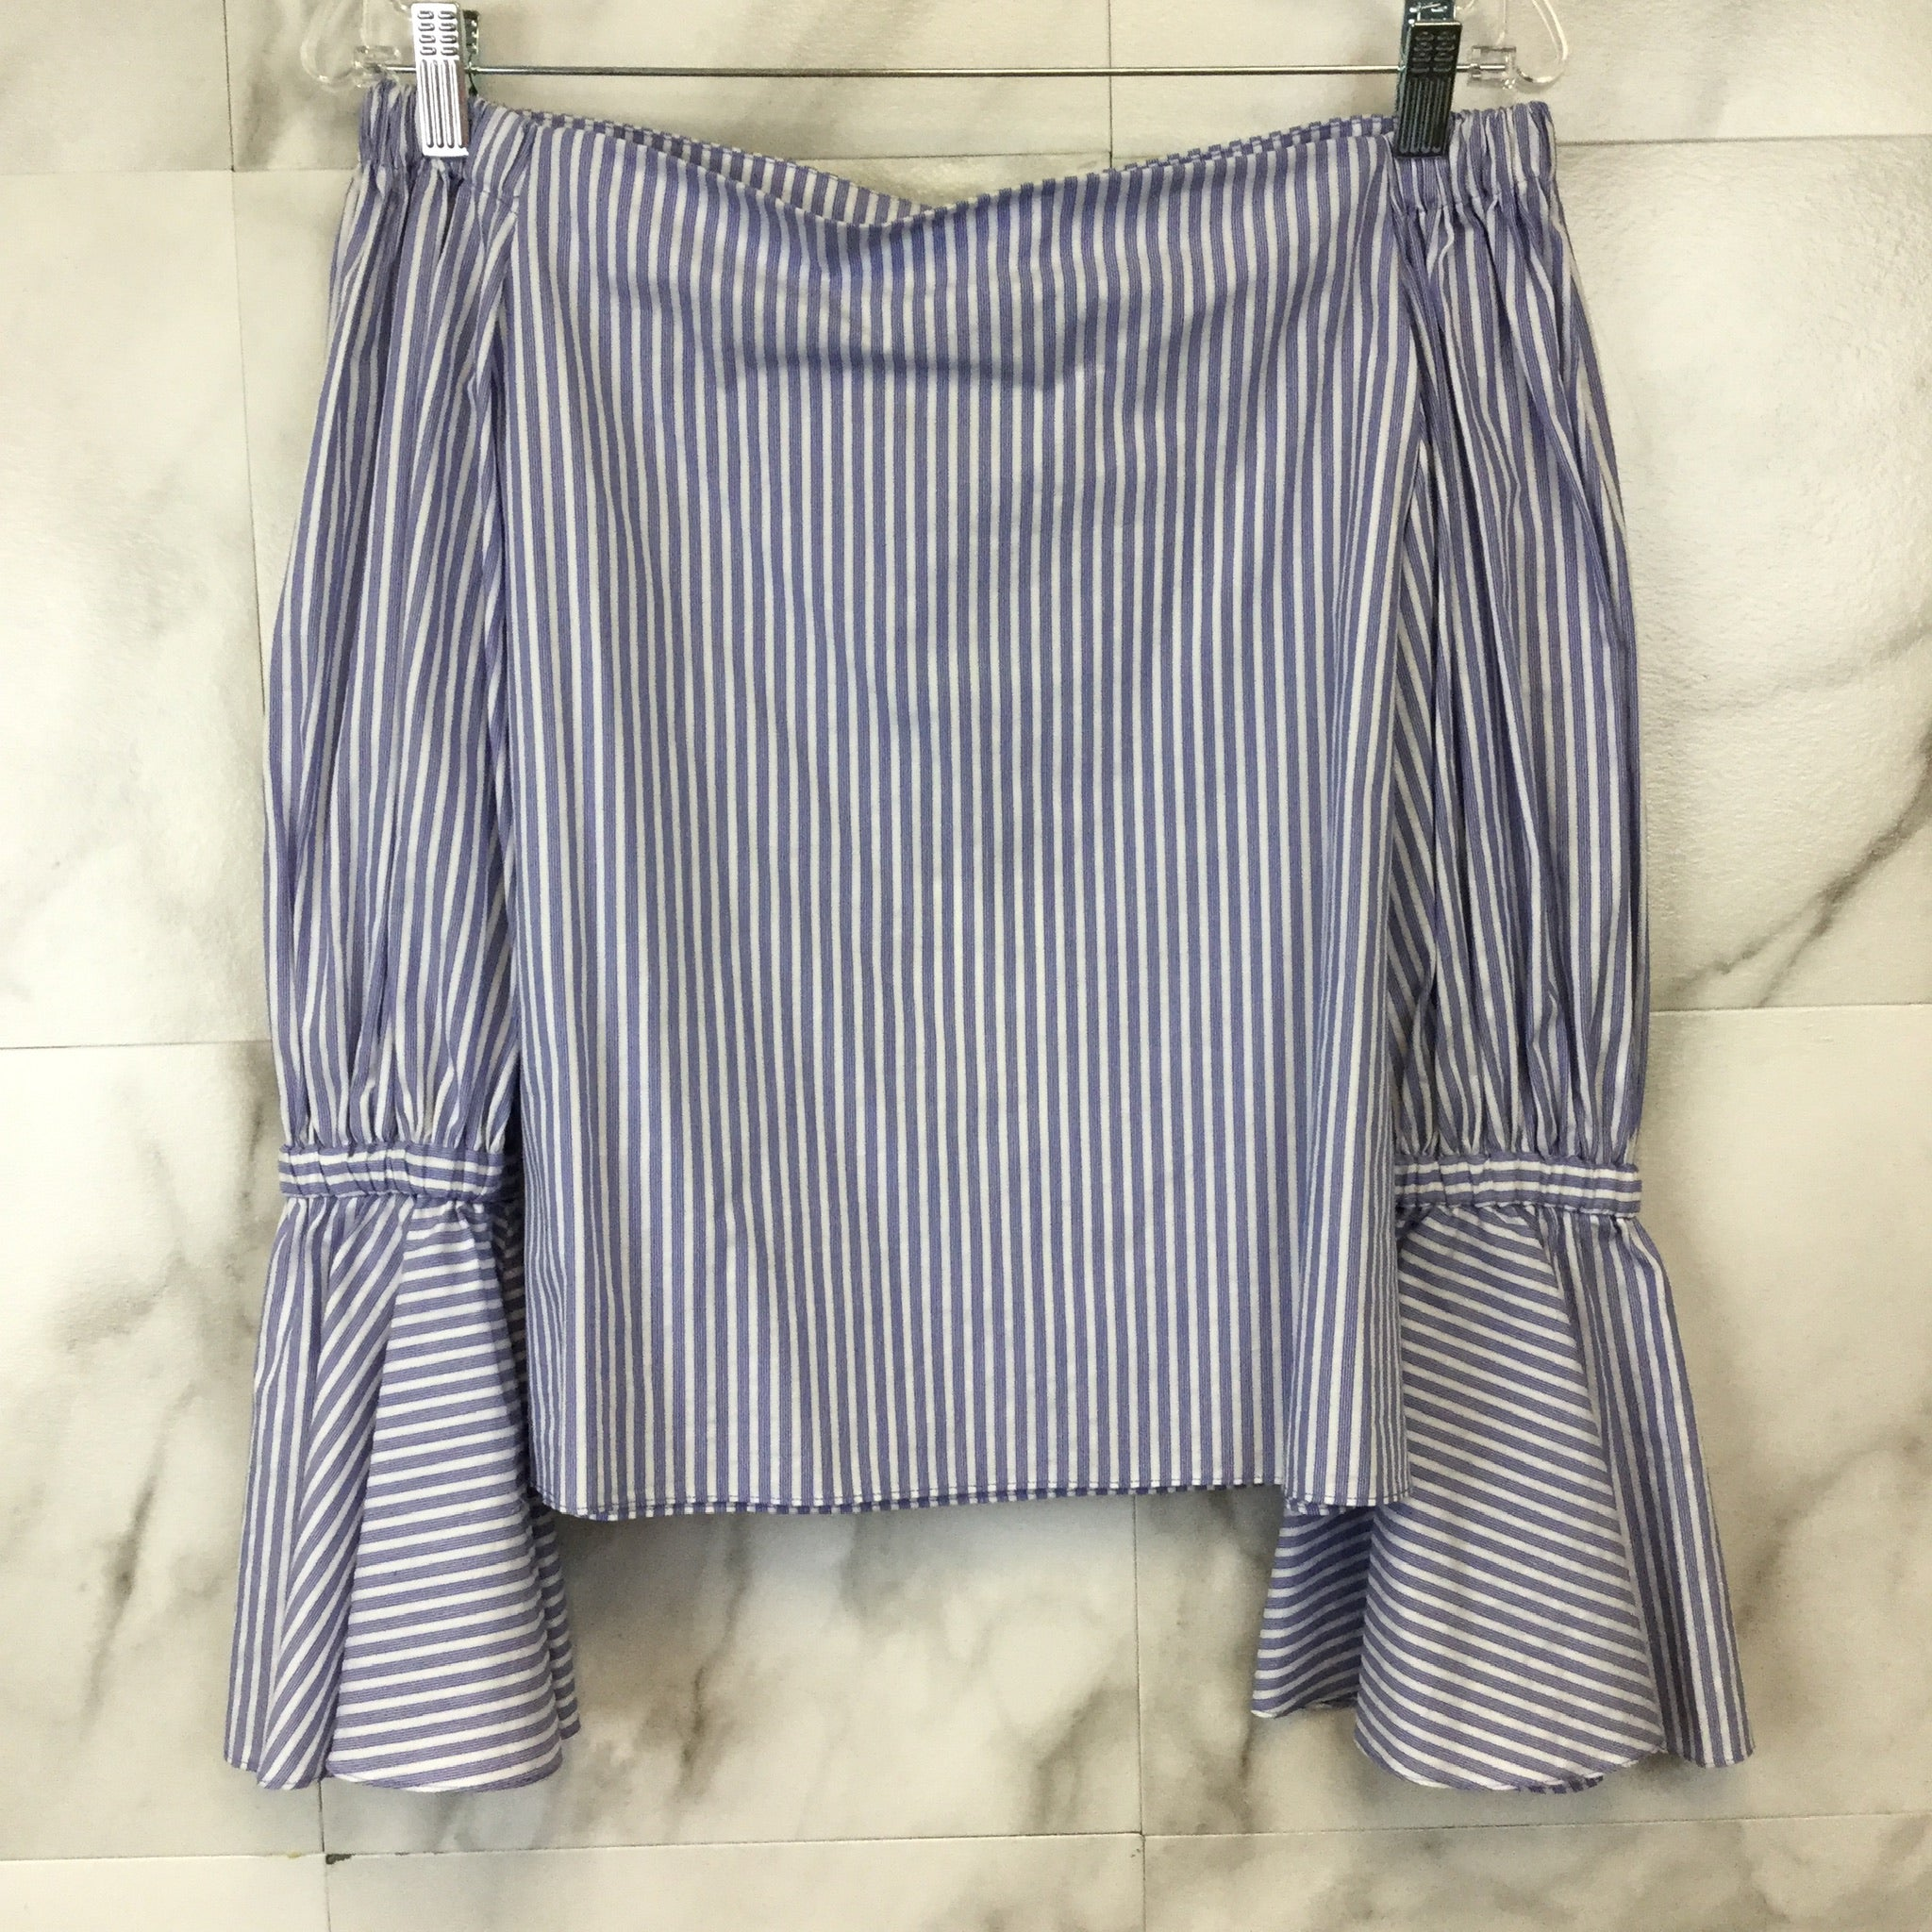 Alexis Juniper Off The Shoulder Top - XS